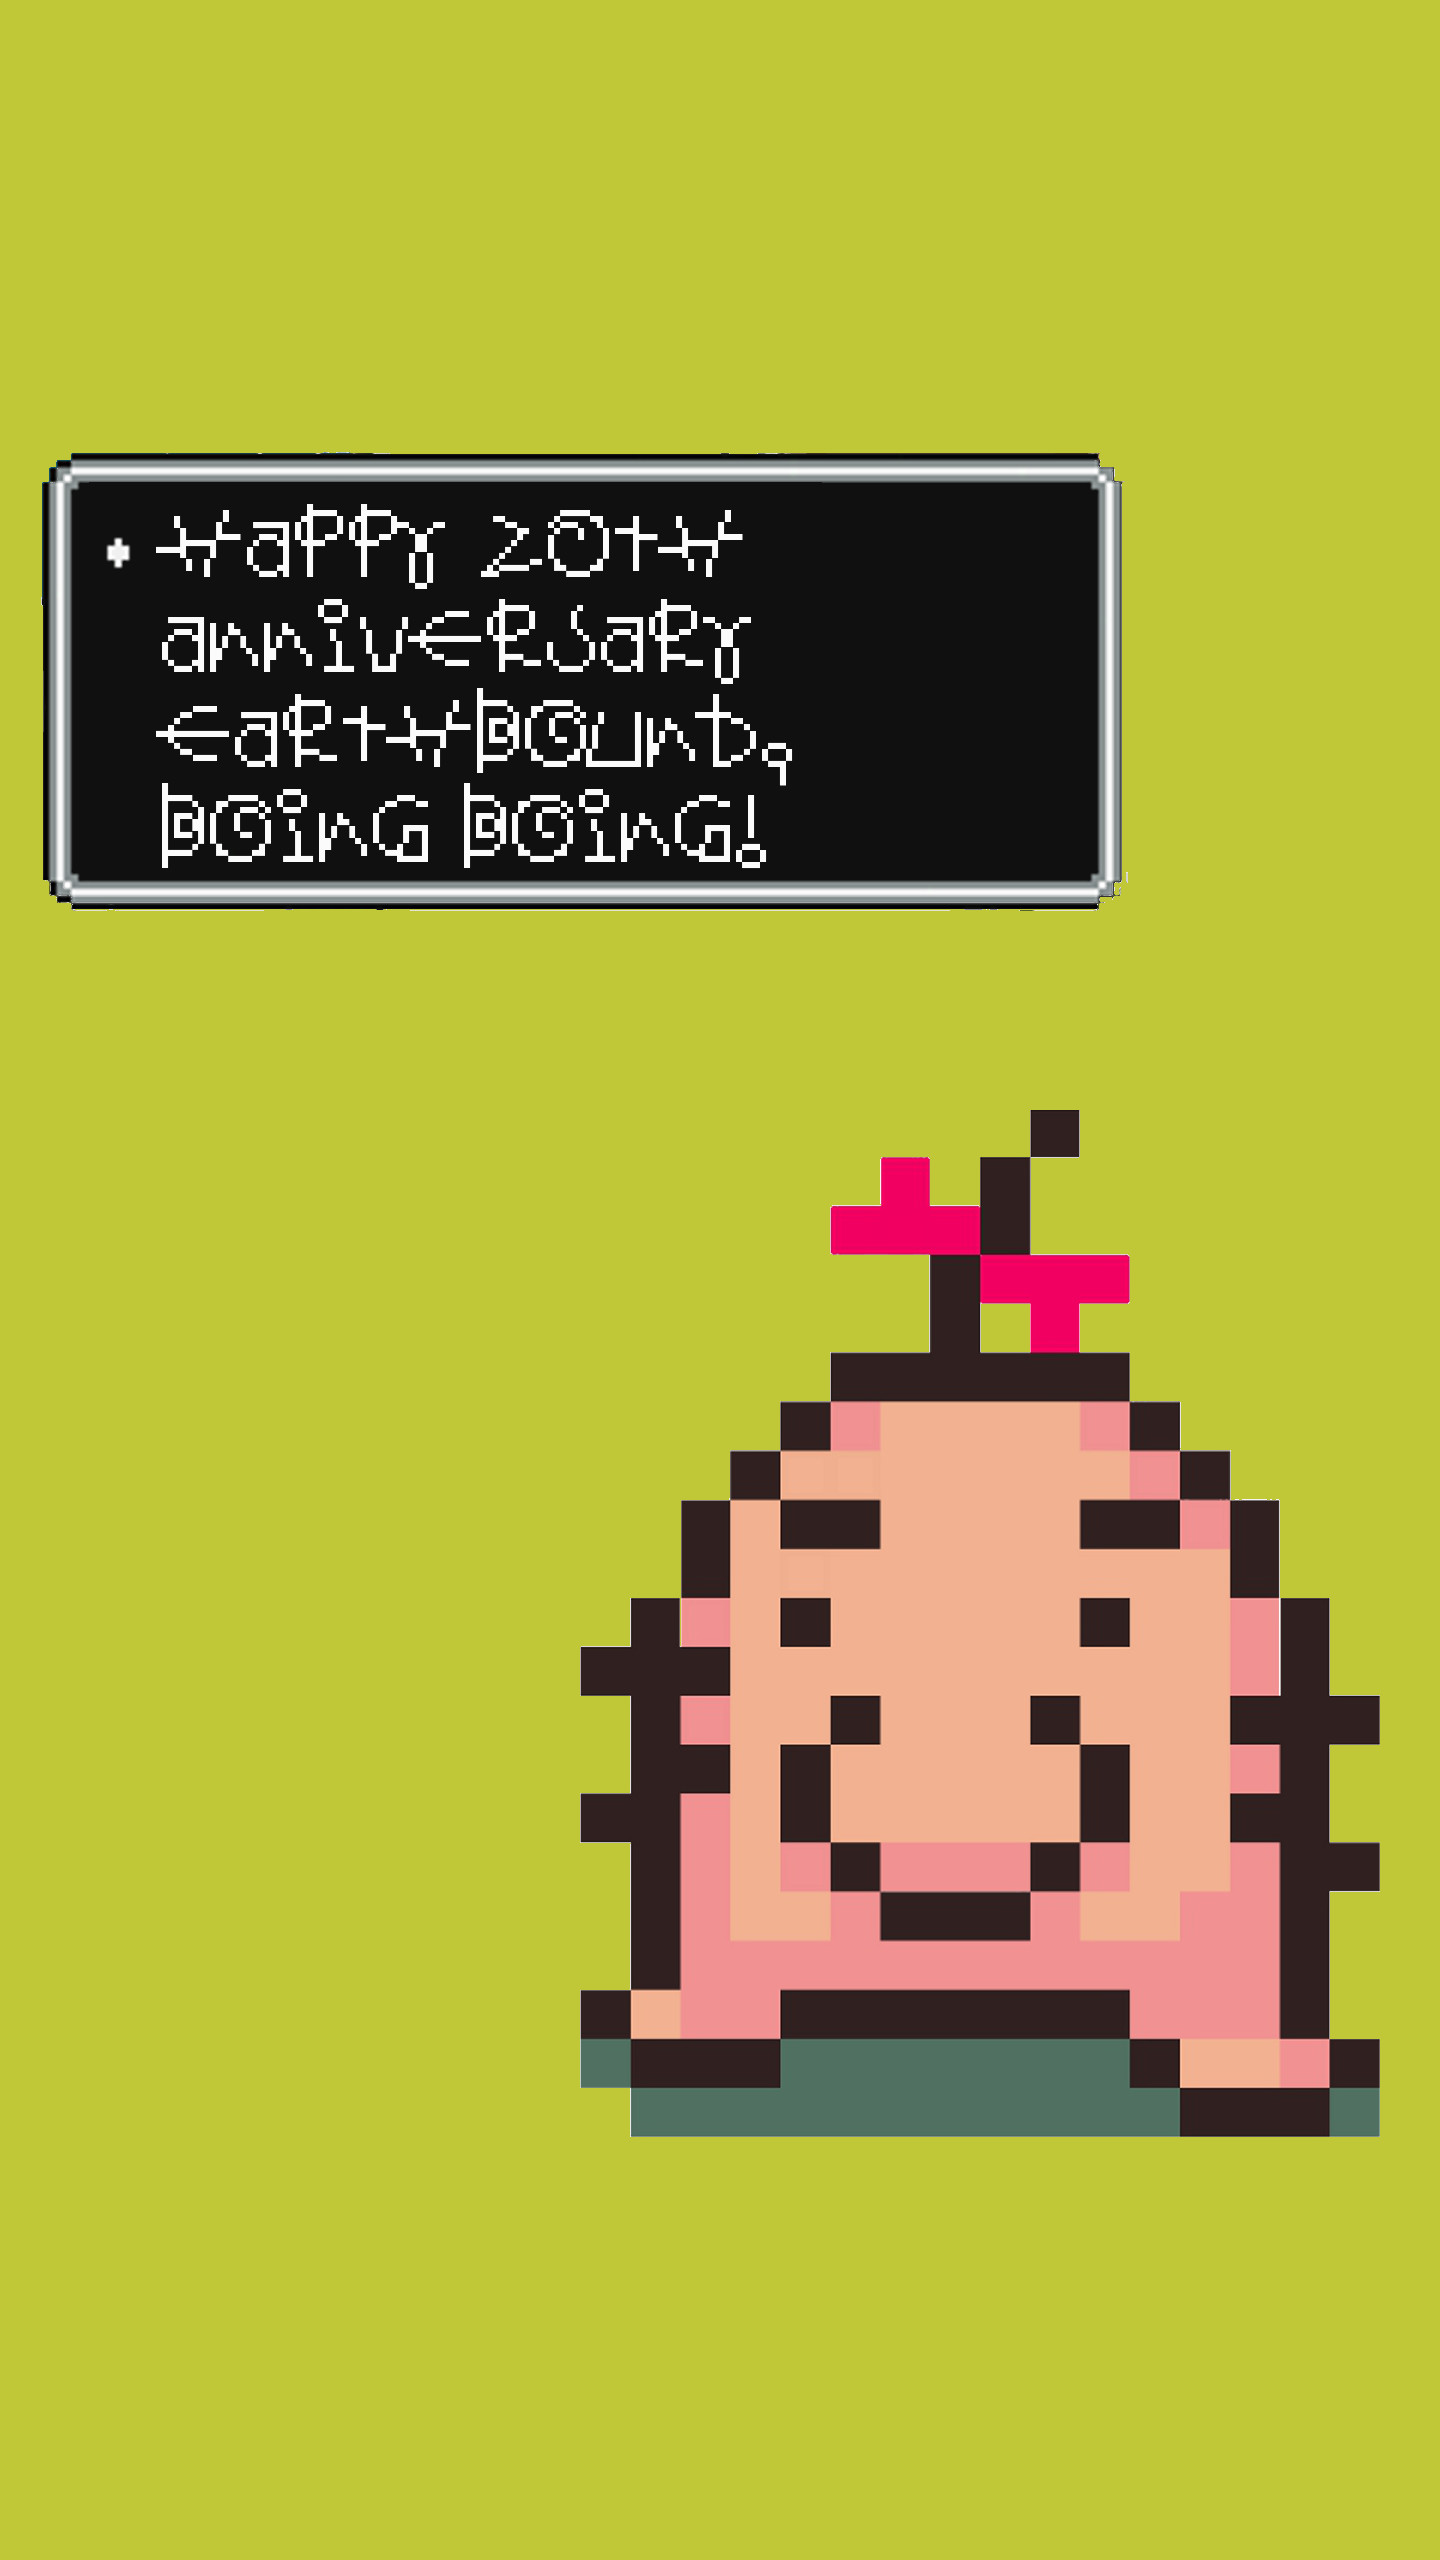 A small collection of Earthbound Phone Wallpapers for the 20th anniversary.